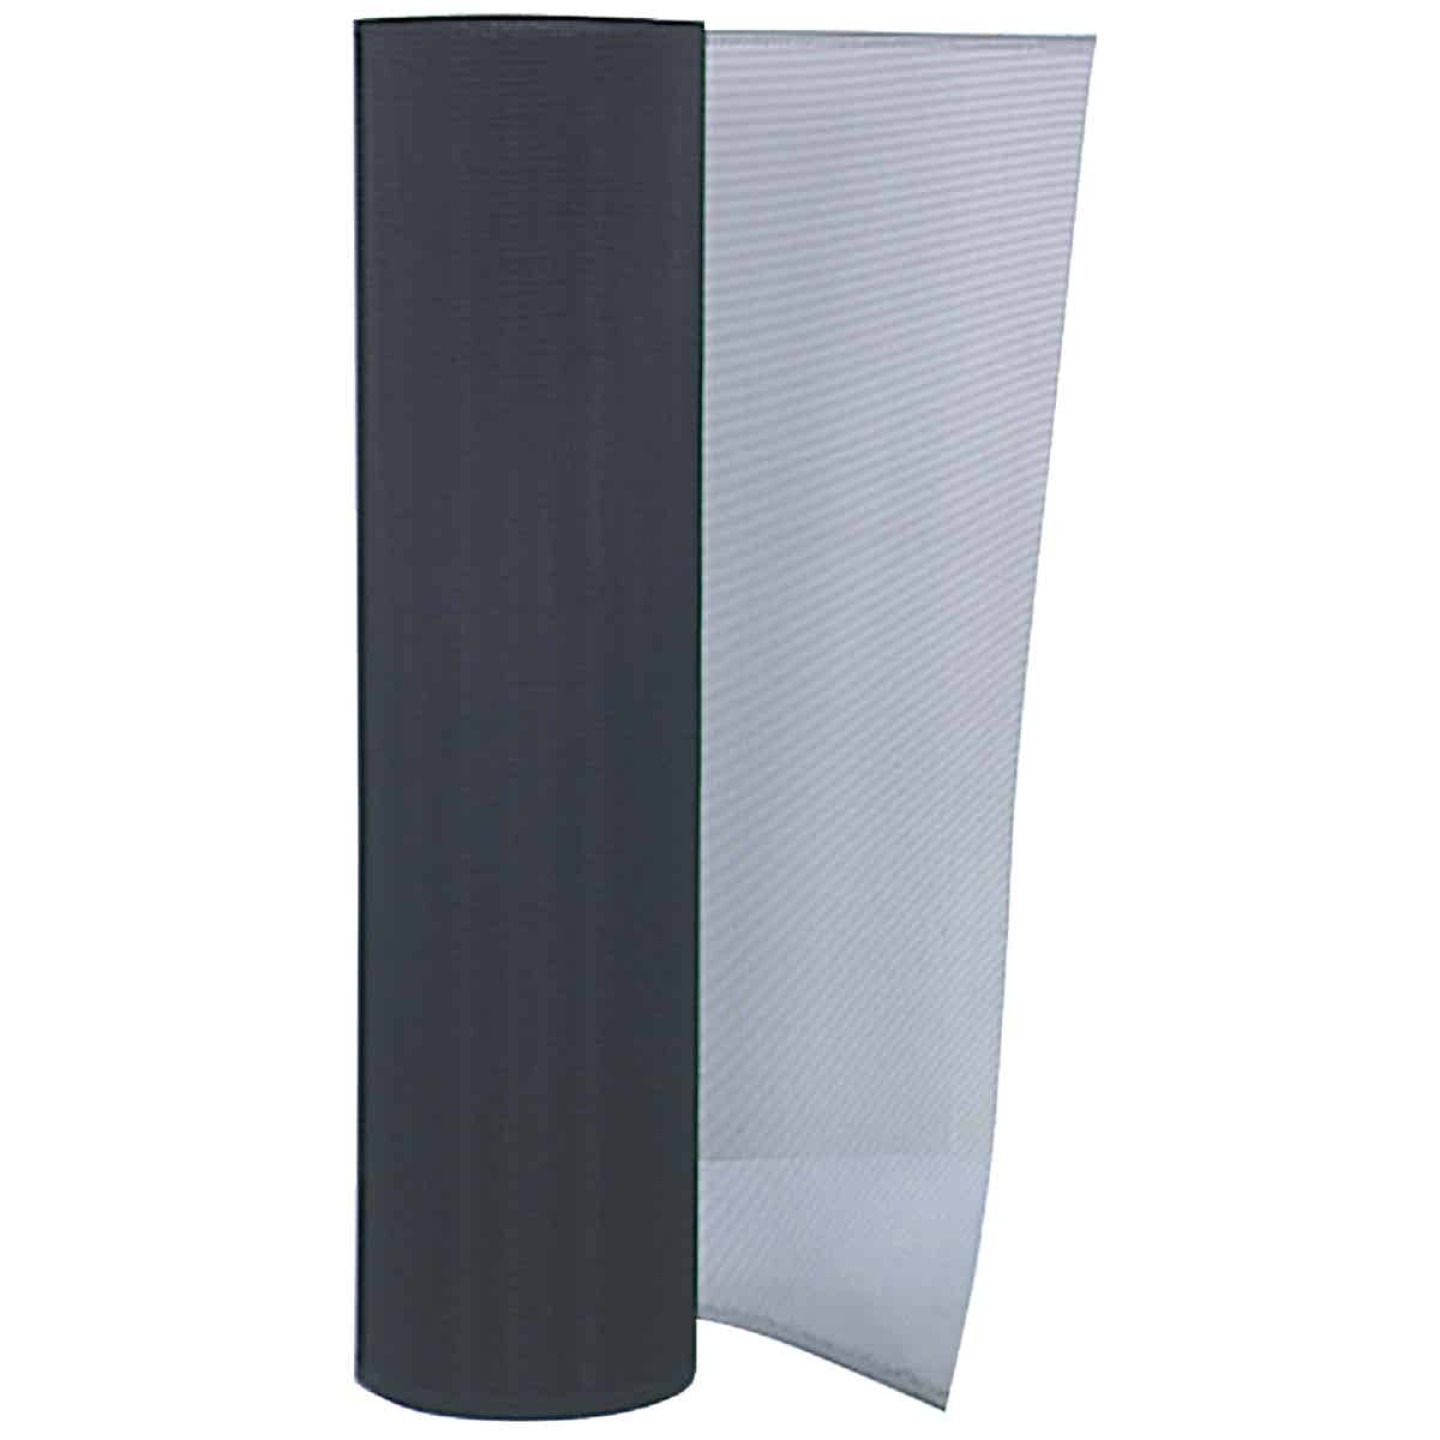 Phifer 24 In. x 100 Ft. Black Aluminum Screen Image 3